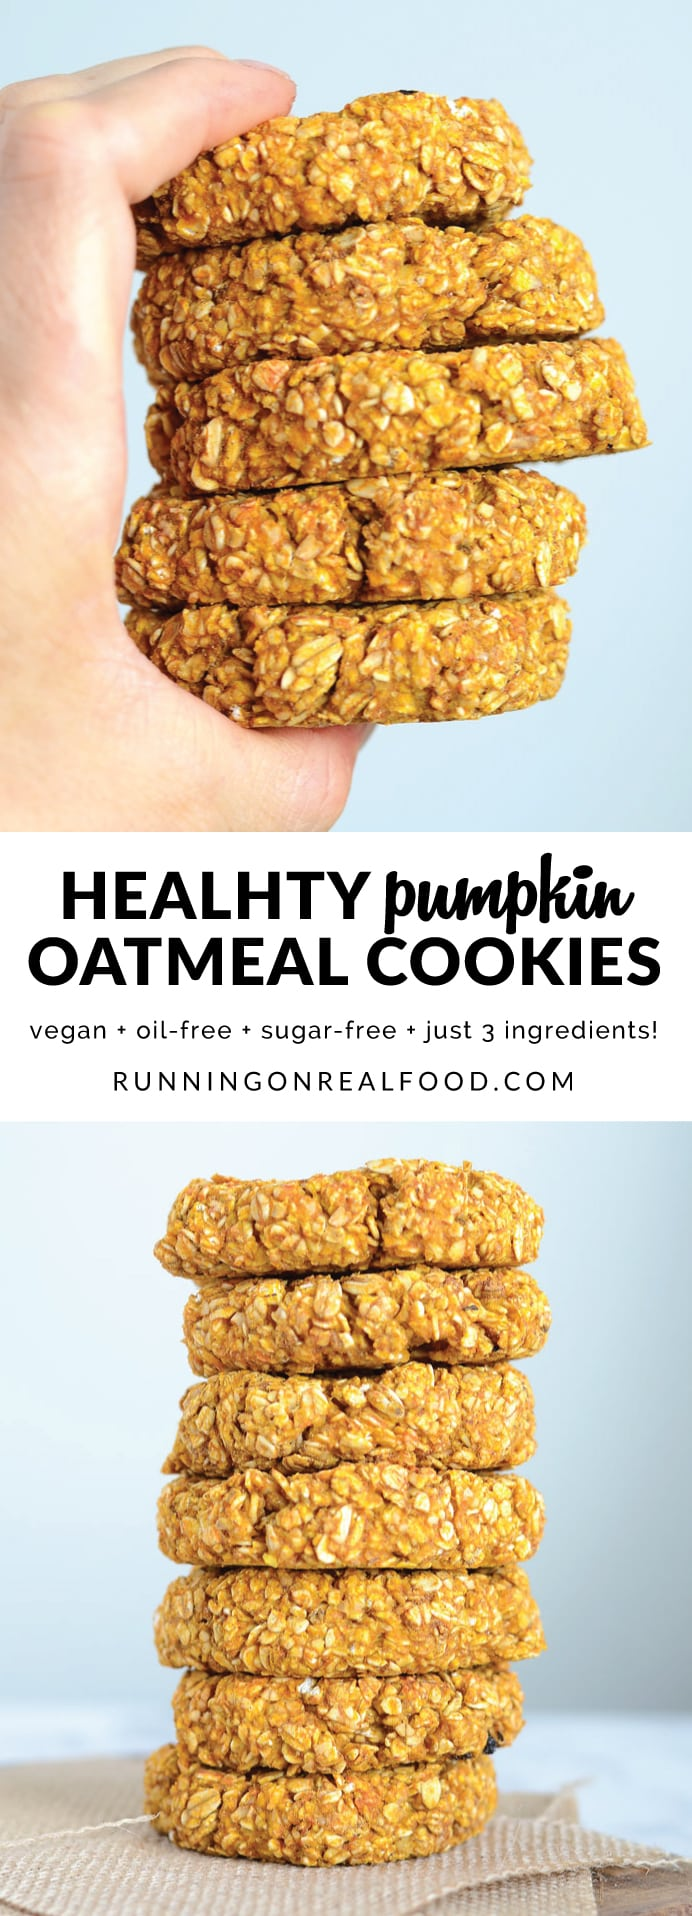 You only need 3 simple ingredients to make these extra hearty, healthy, wholesome and satisfying pumpkin oat cookies. They're ideal before or after a workout for a natural energy boost. Try adding in pumpkin pie spice, walnuts, chocolate chips, raisins or coconut to take them up a notch!